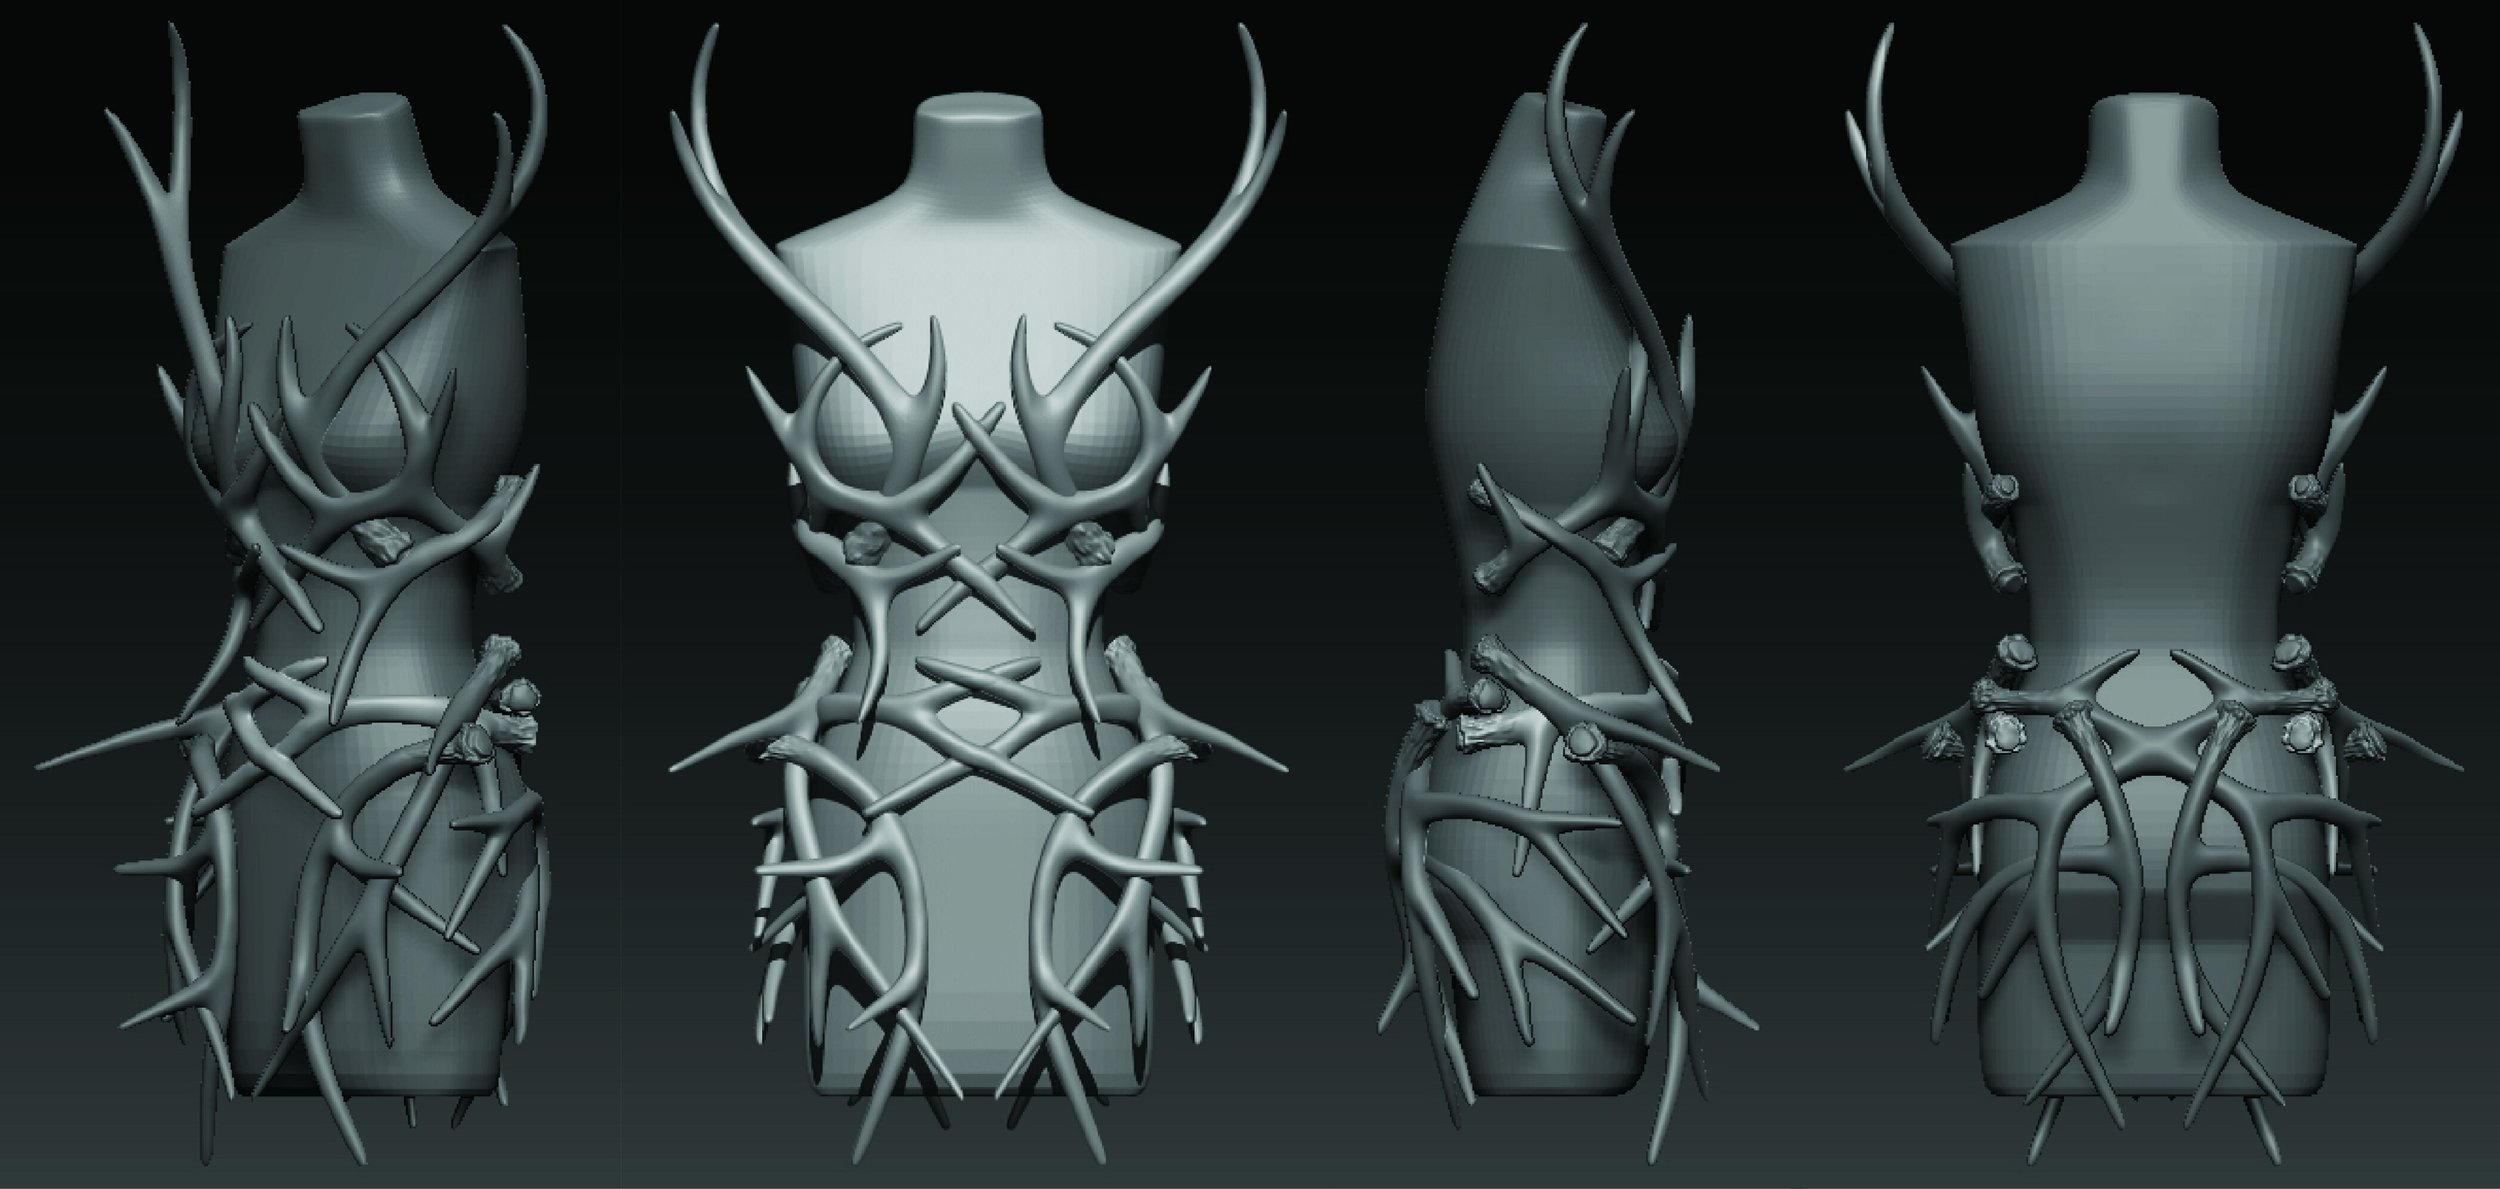 Orthographic rendering of the Antler dress